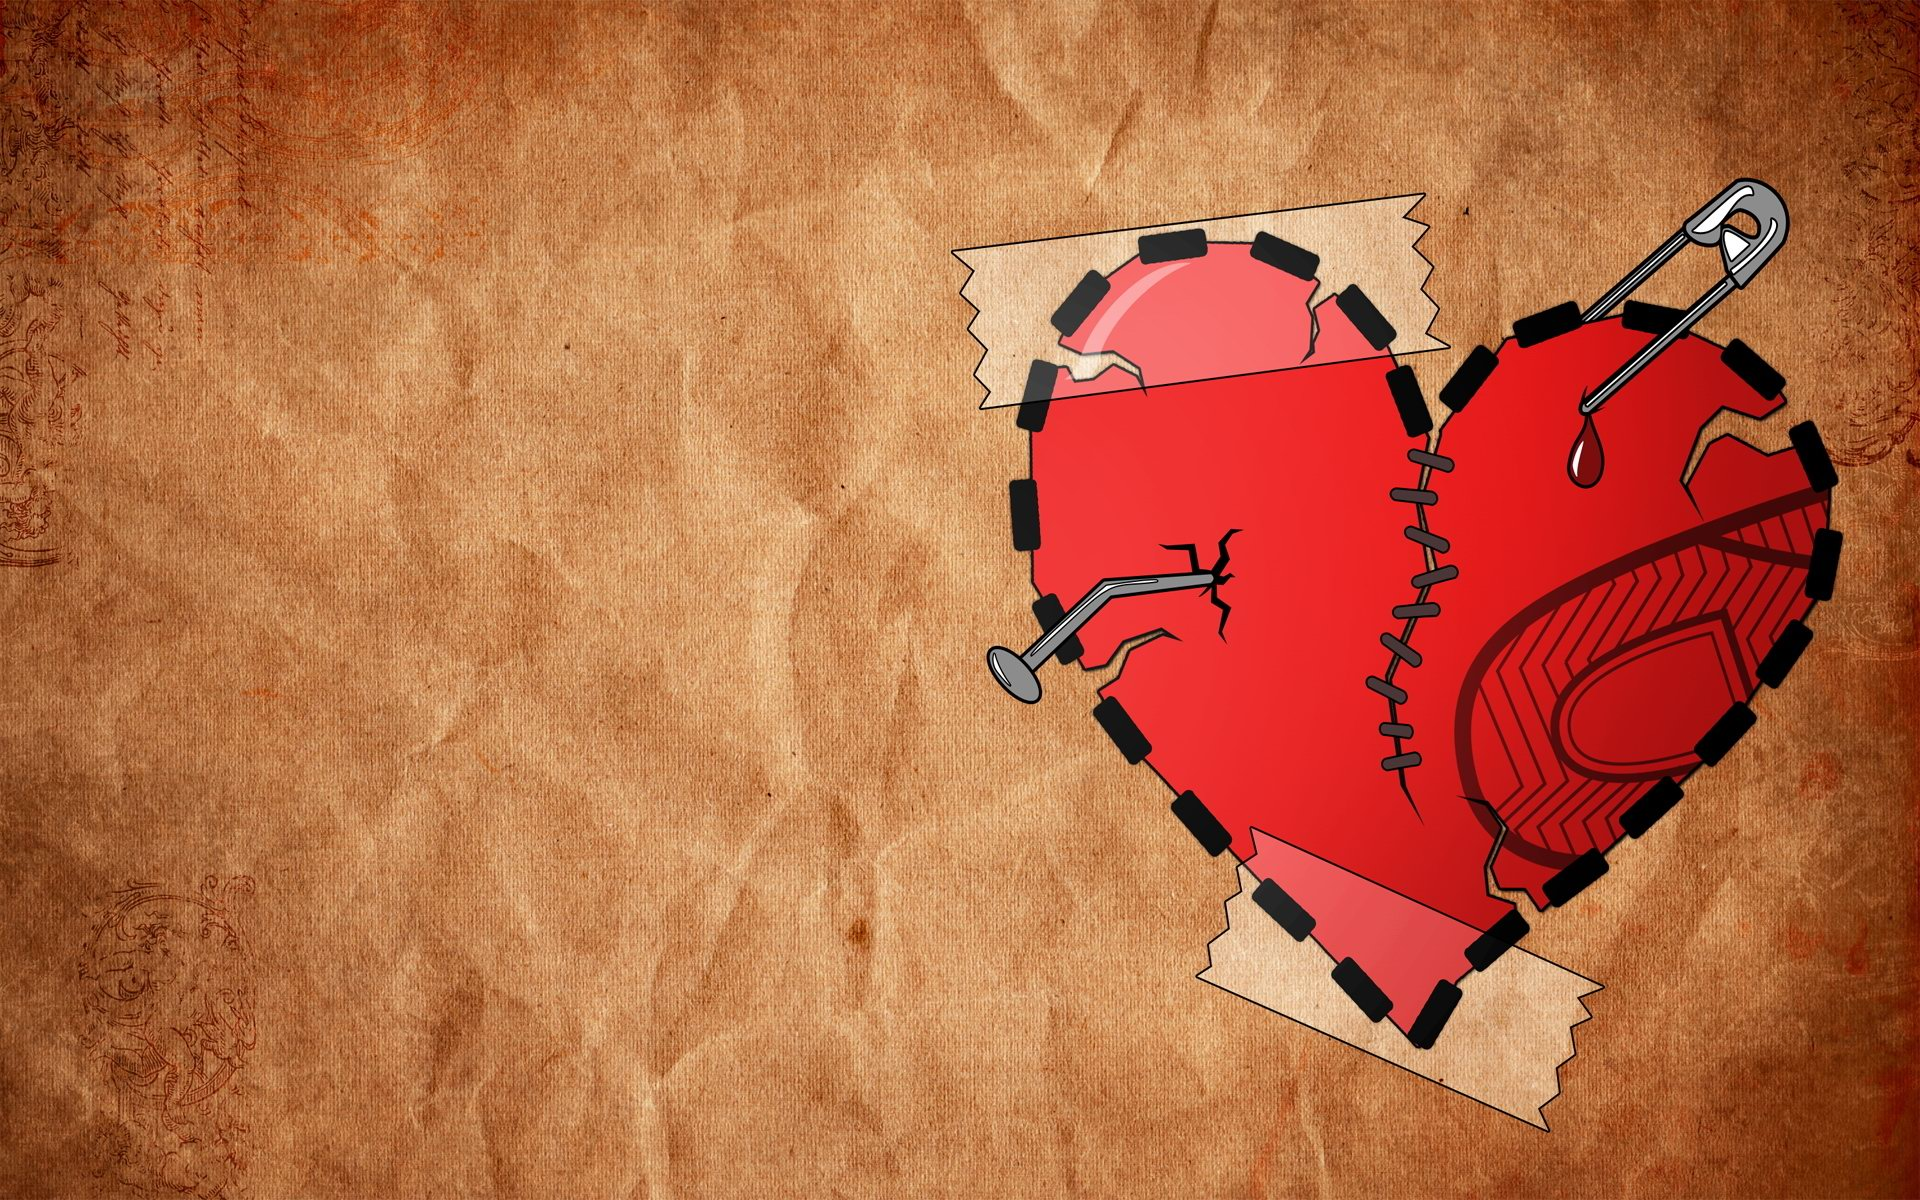 Wallpaper cartoon Love Hurts : wallpaper of love hurts - HD Desktop Wallpapers 4k HD